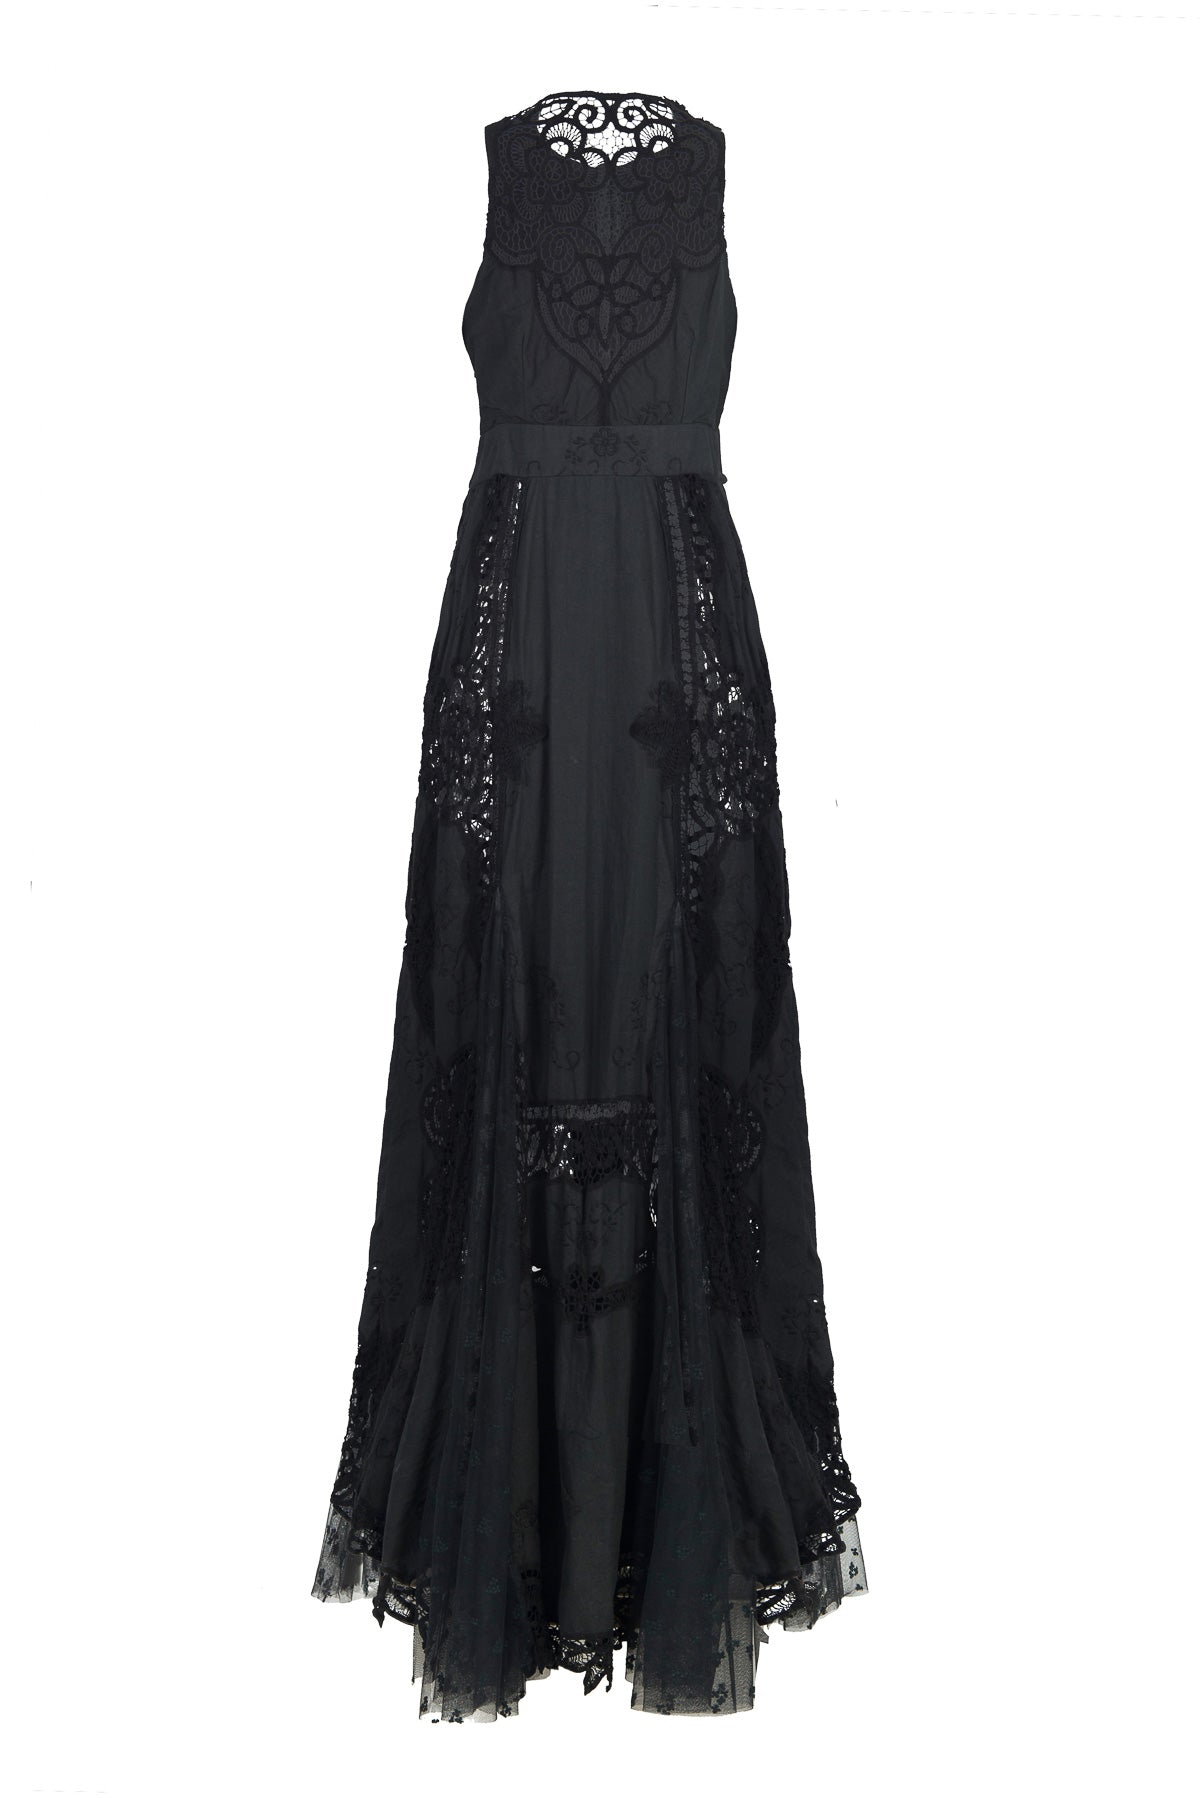 nevenka black rose dress back